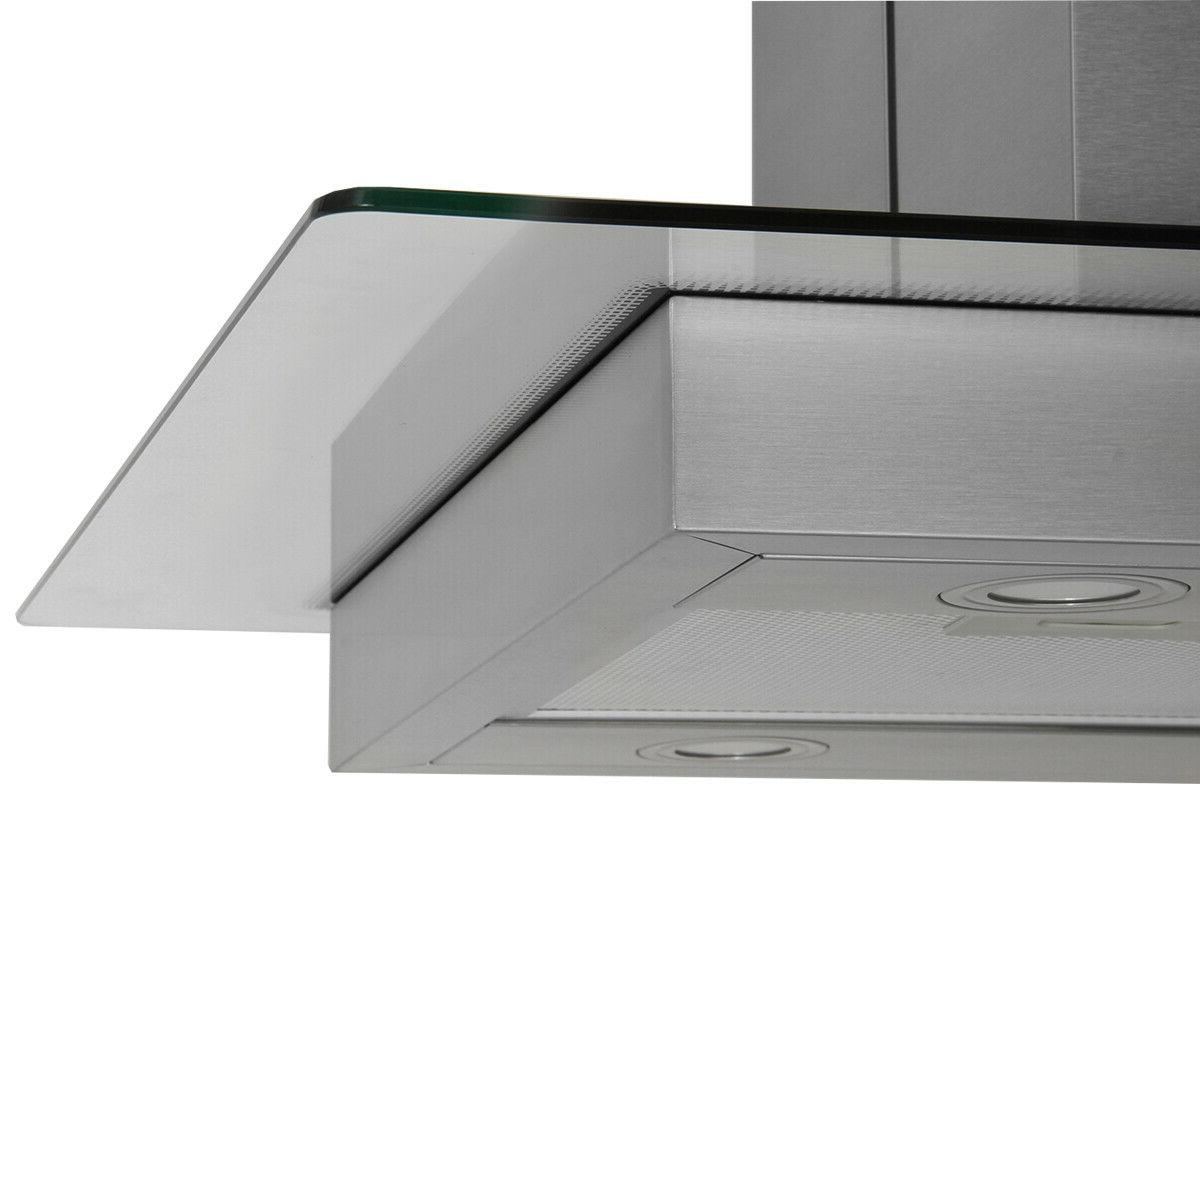 30 Range Island Mount Stainless Steel Touch Control 870 CFM